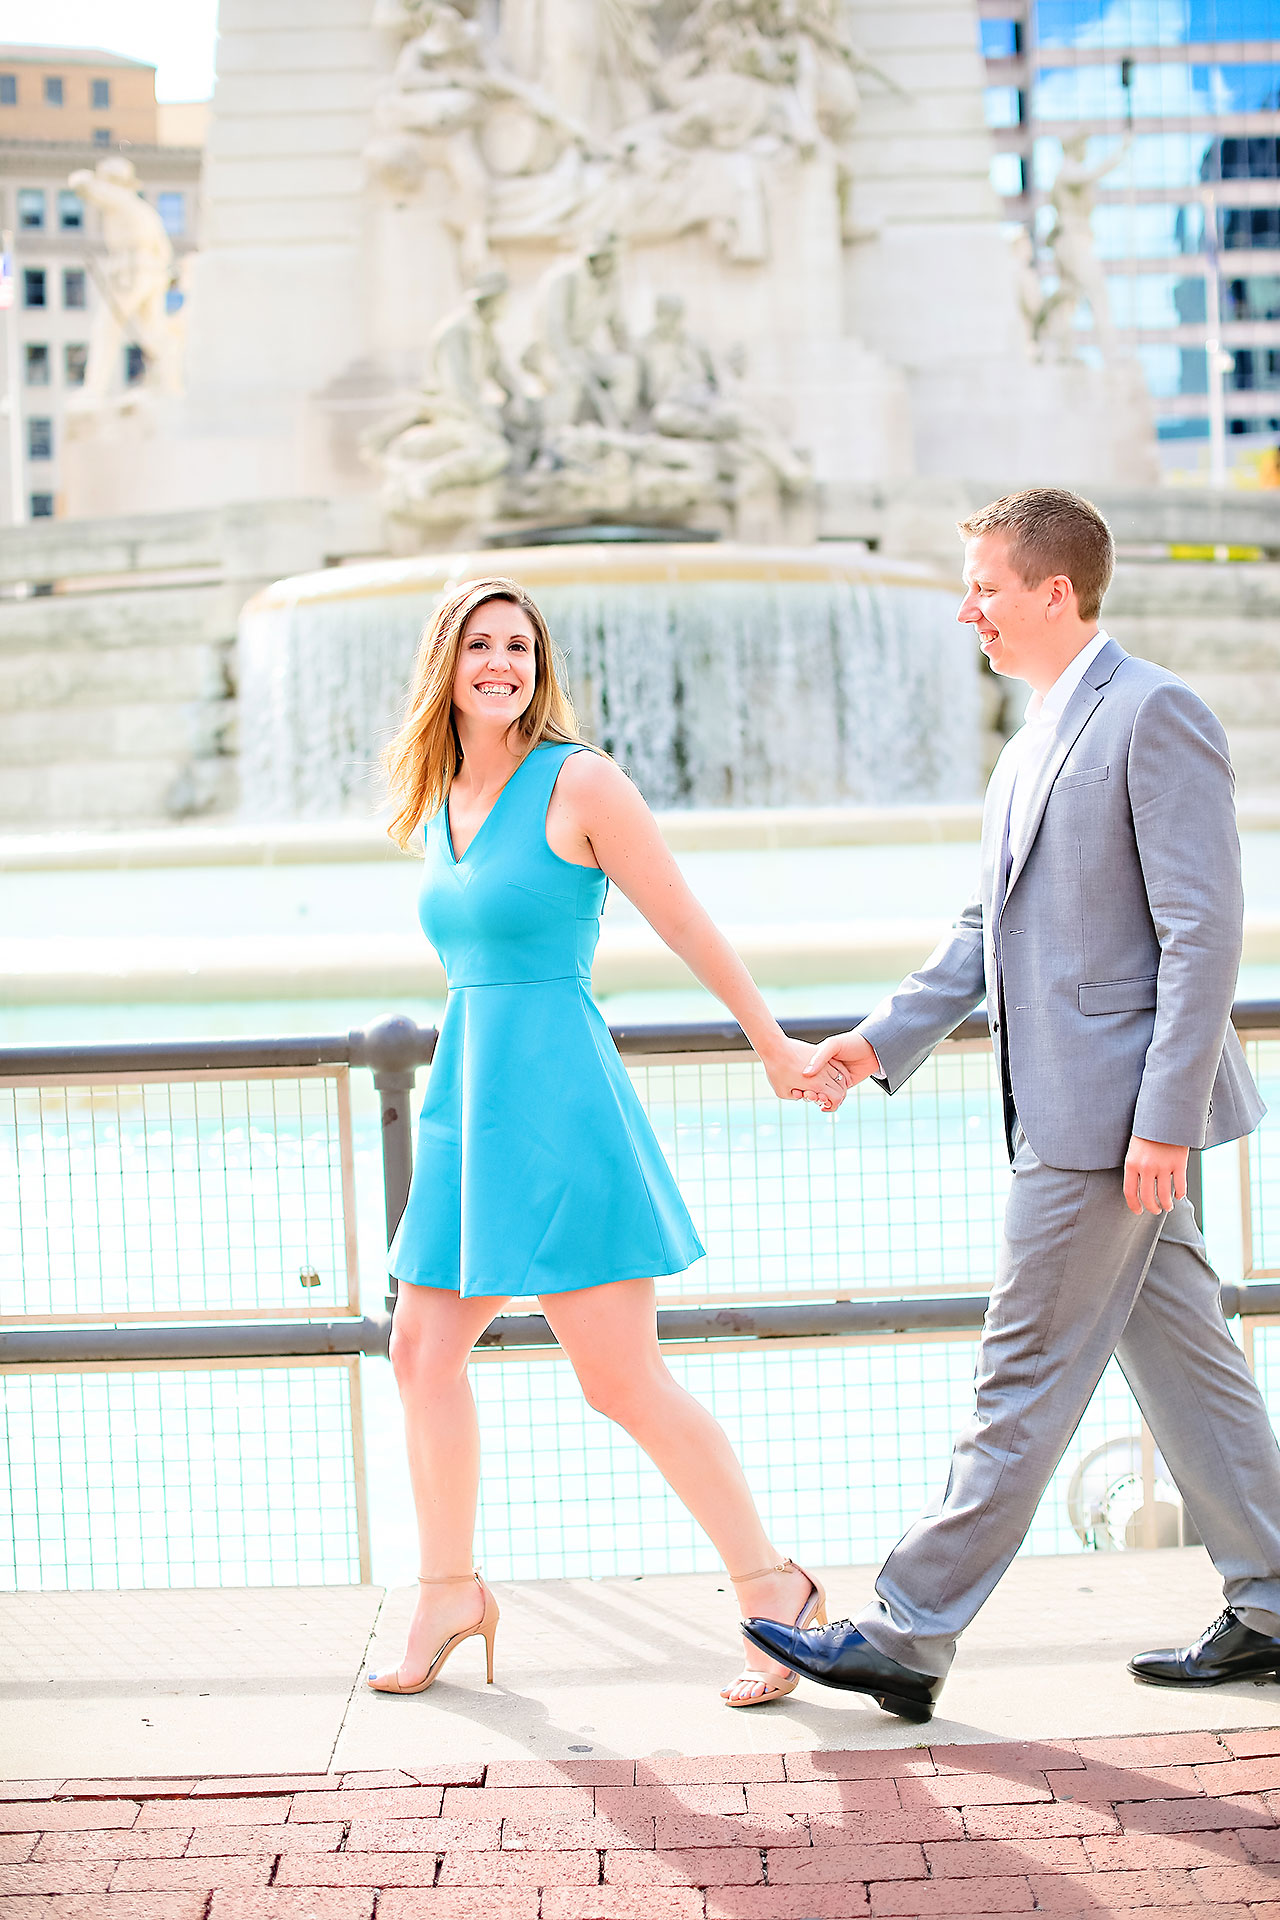 Chelsea Jeff Downtown Indy Engagement Session 093